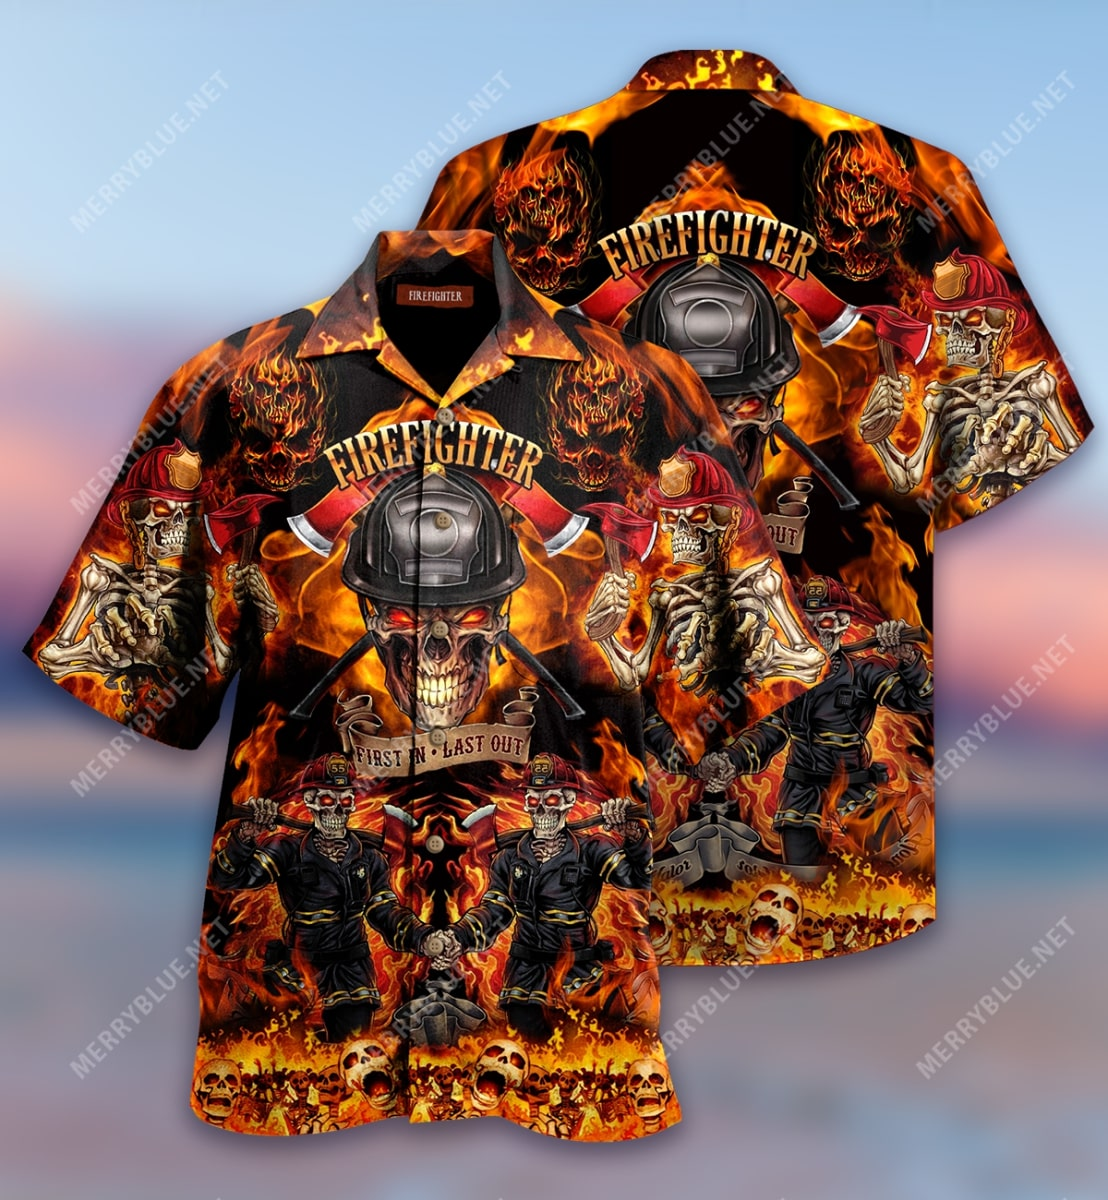 firefighter first in last out all over print hawaiian shirt 4